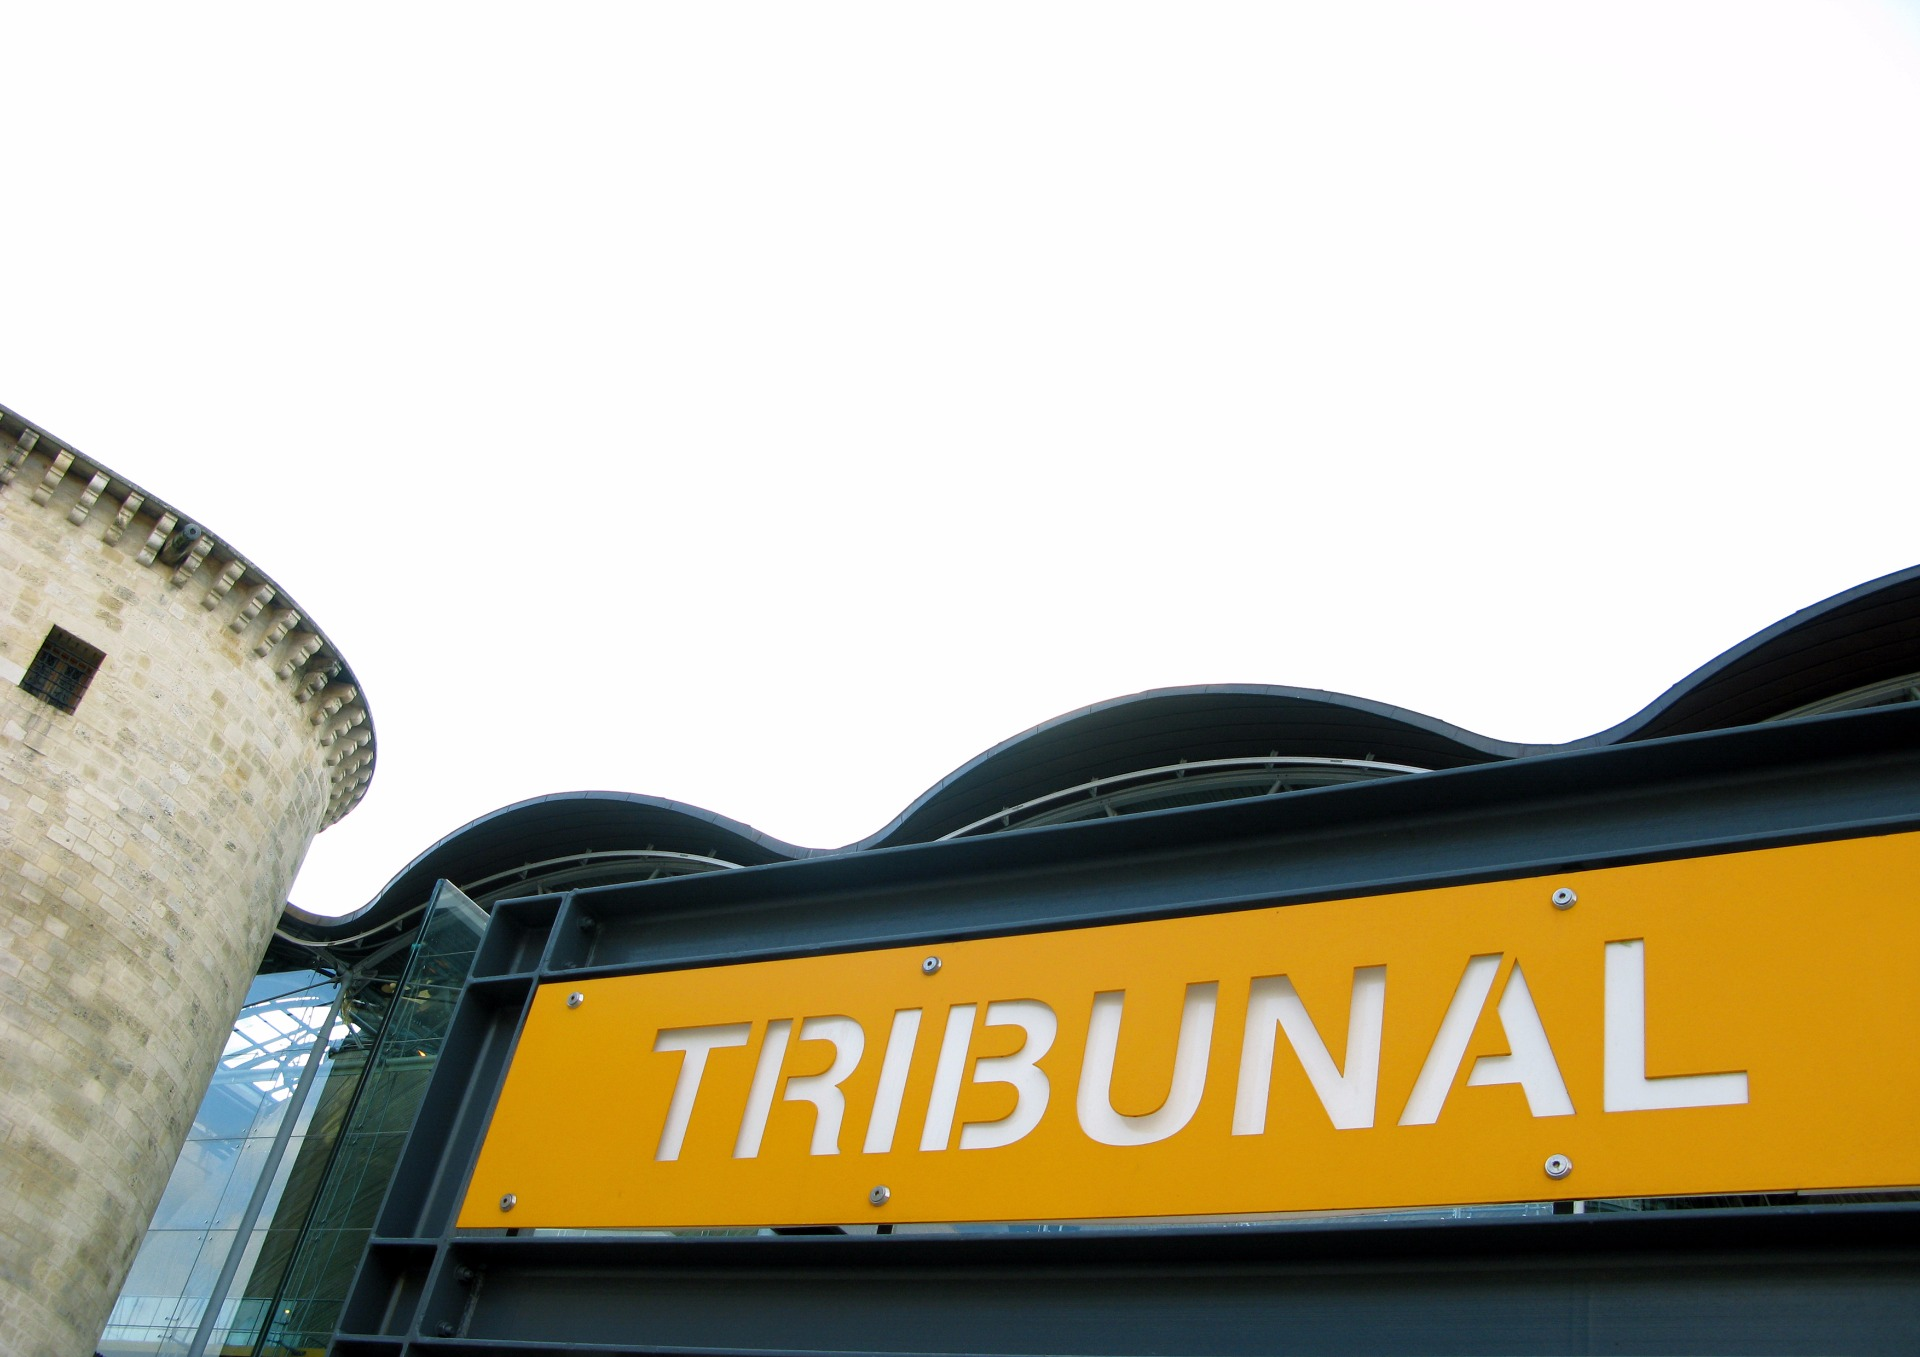 Tribunal fees are unlawful